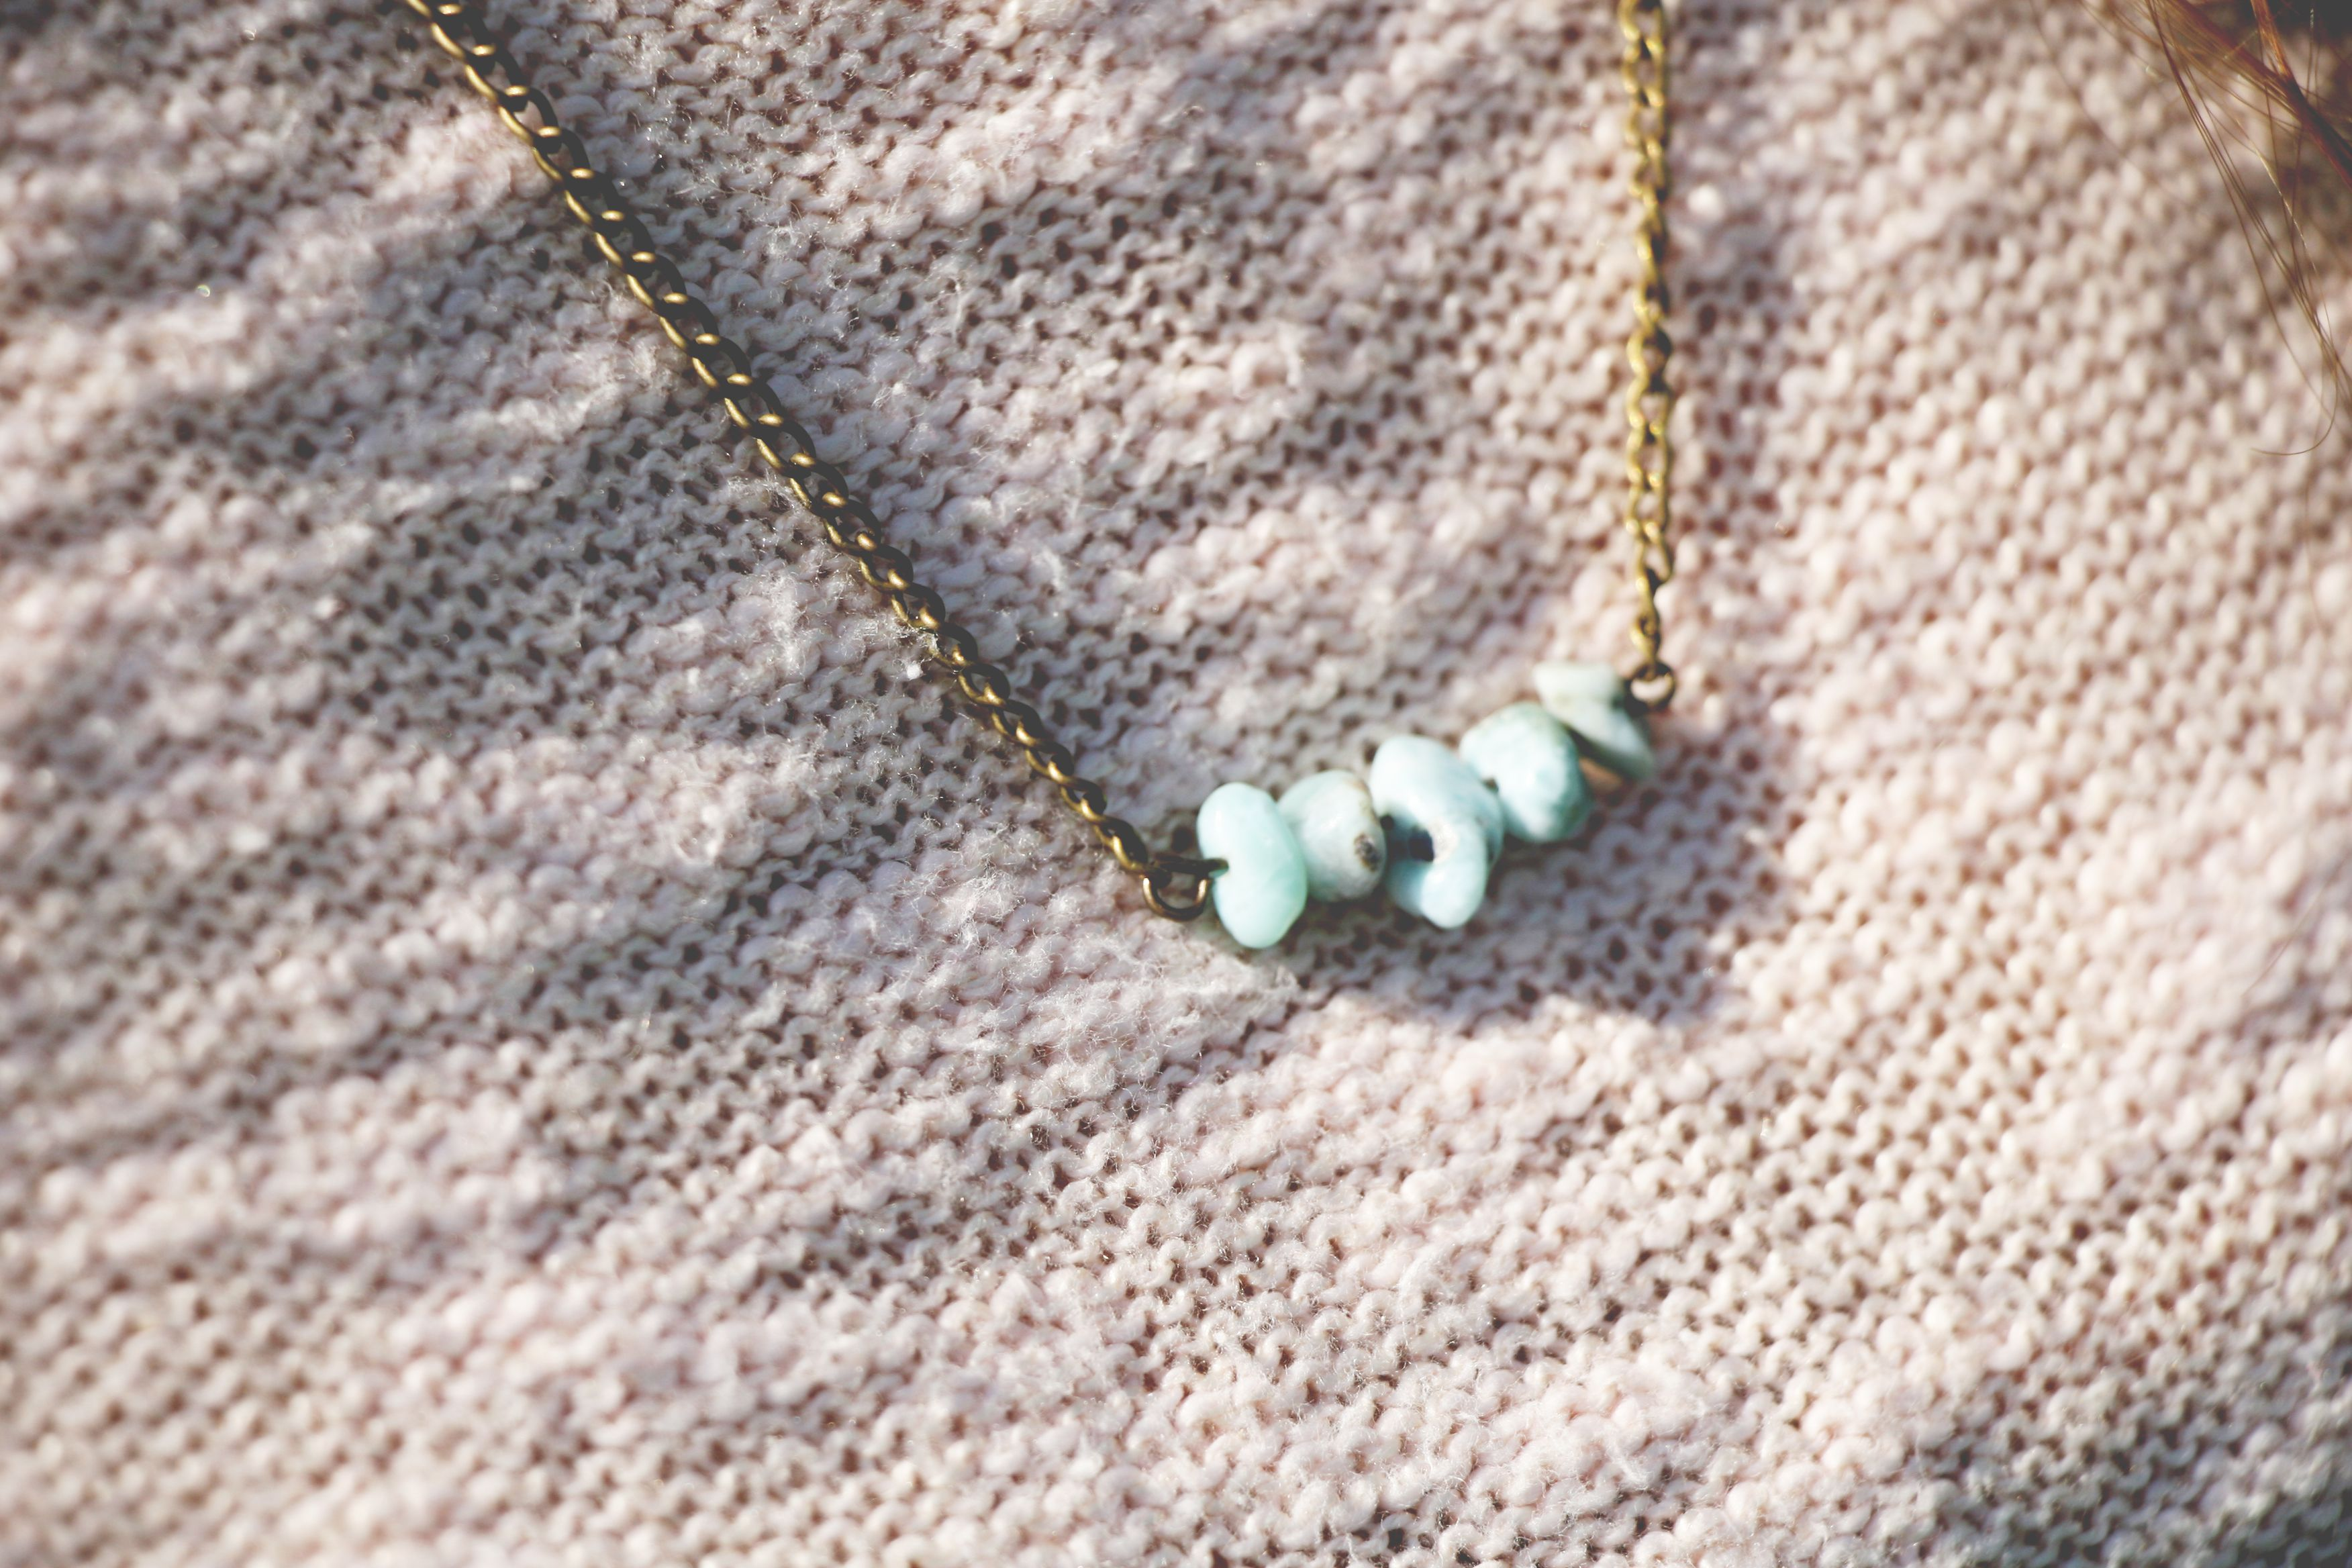 Turquoise Beaded Antiqued Brass Finish Necklace $19.00 loomstruck.etsy.com  ♥ Pin Now, Look Later ♥ loomstruck.etsy.com